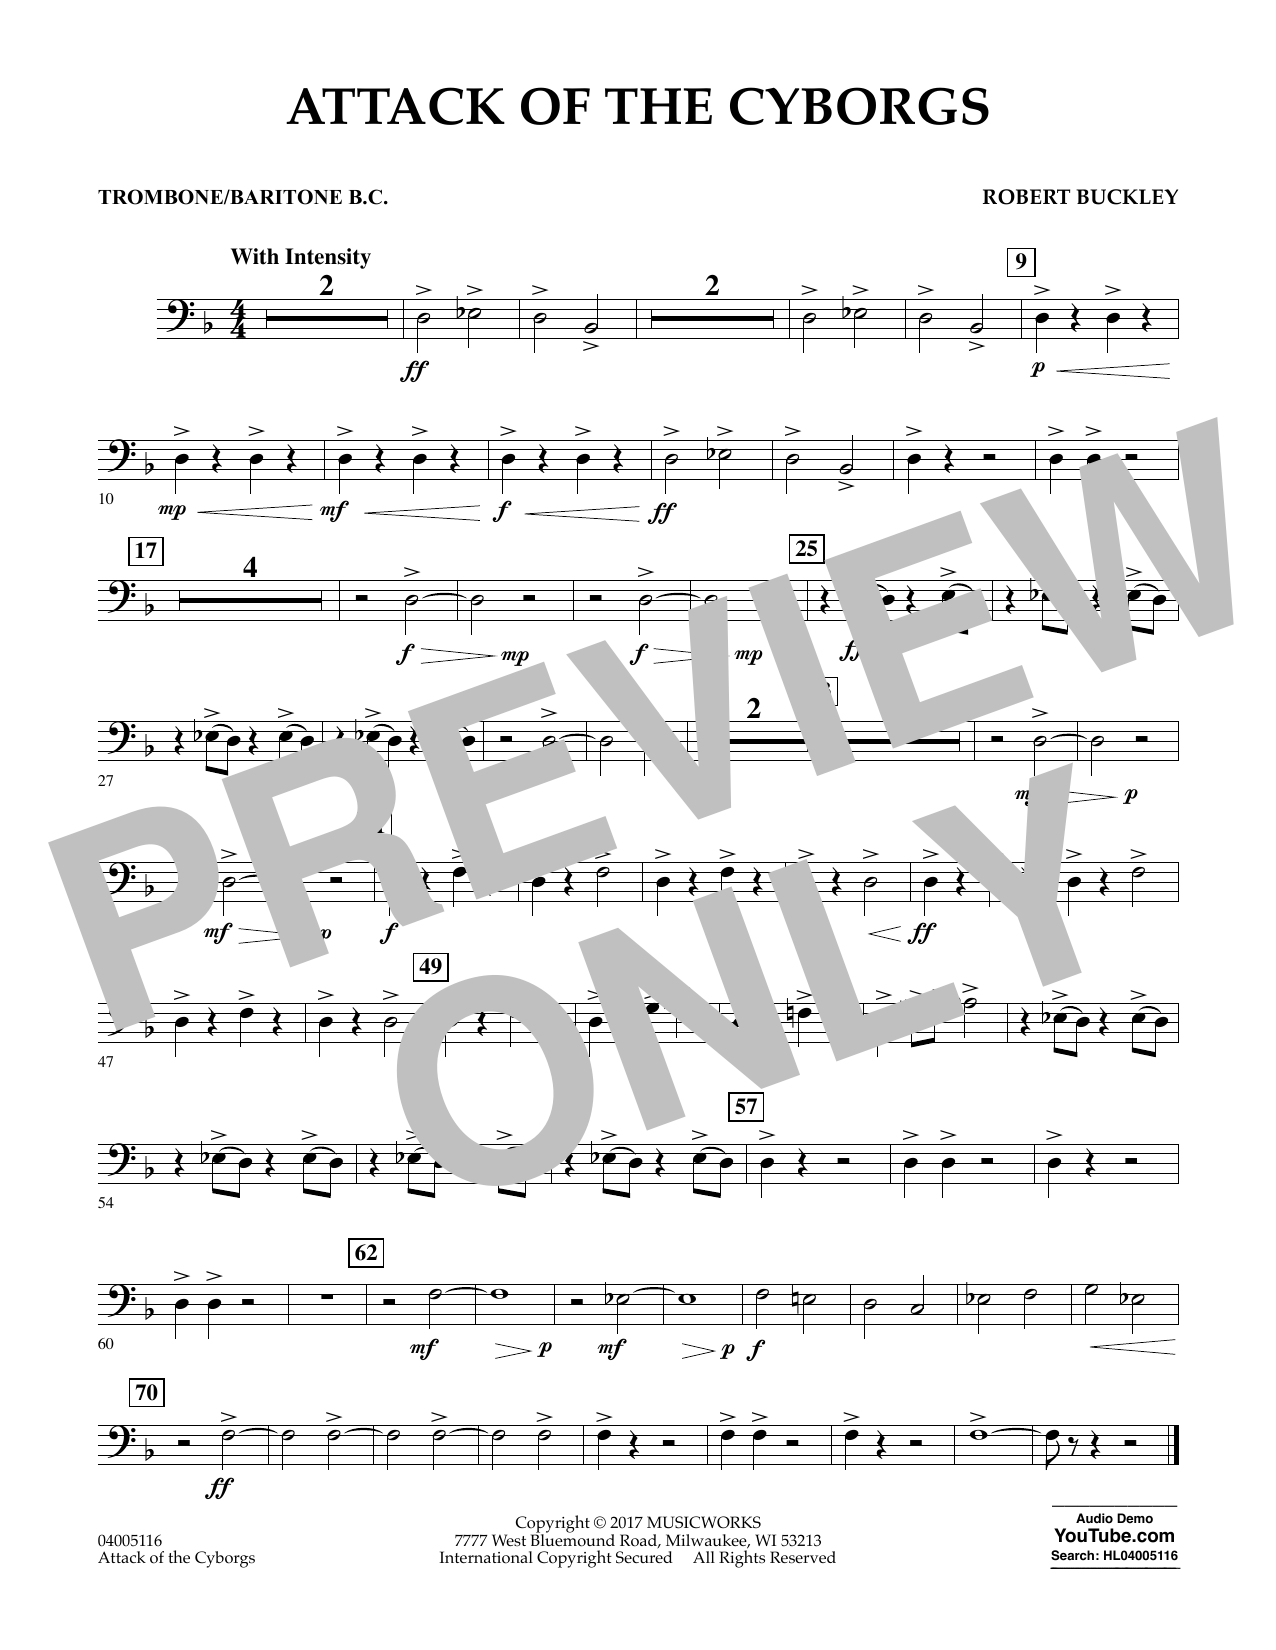 Robert Buckley Attack of the Cyborgs - Trombone/Baritone B.C. sheet music notes and chords. Download Printable PDF.